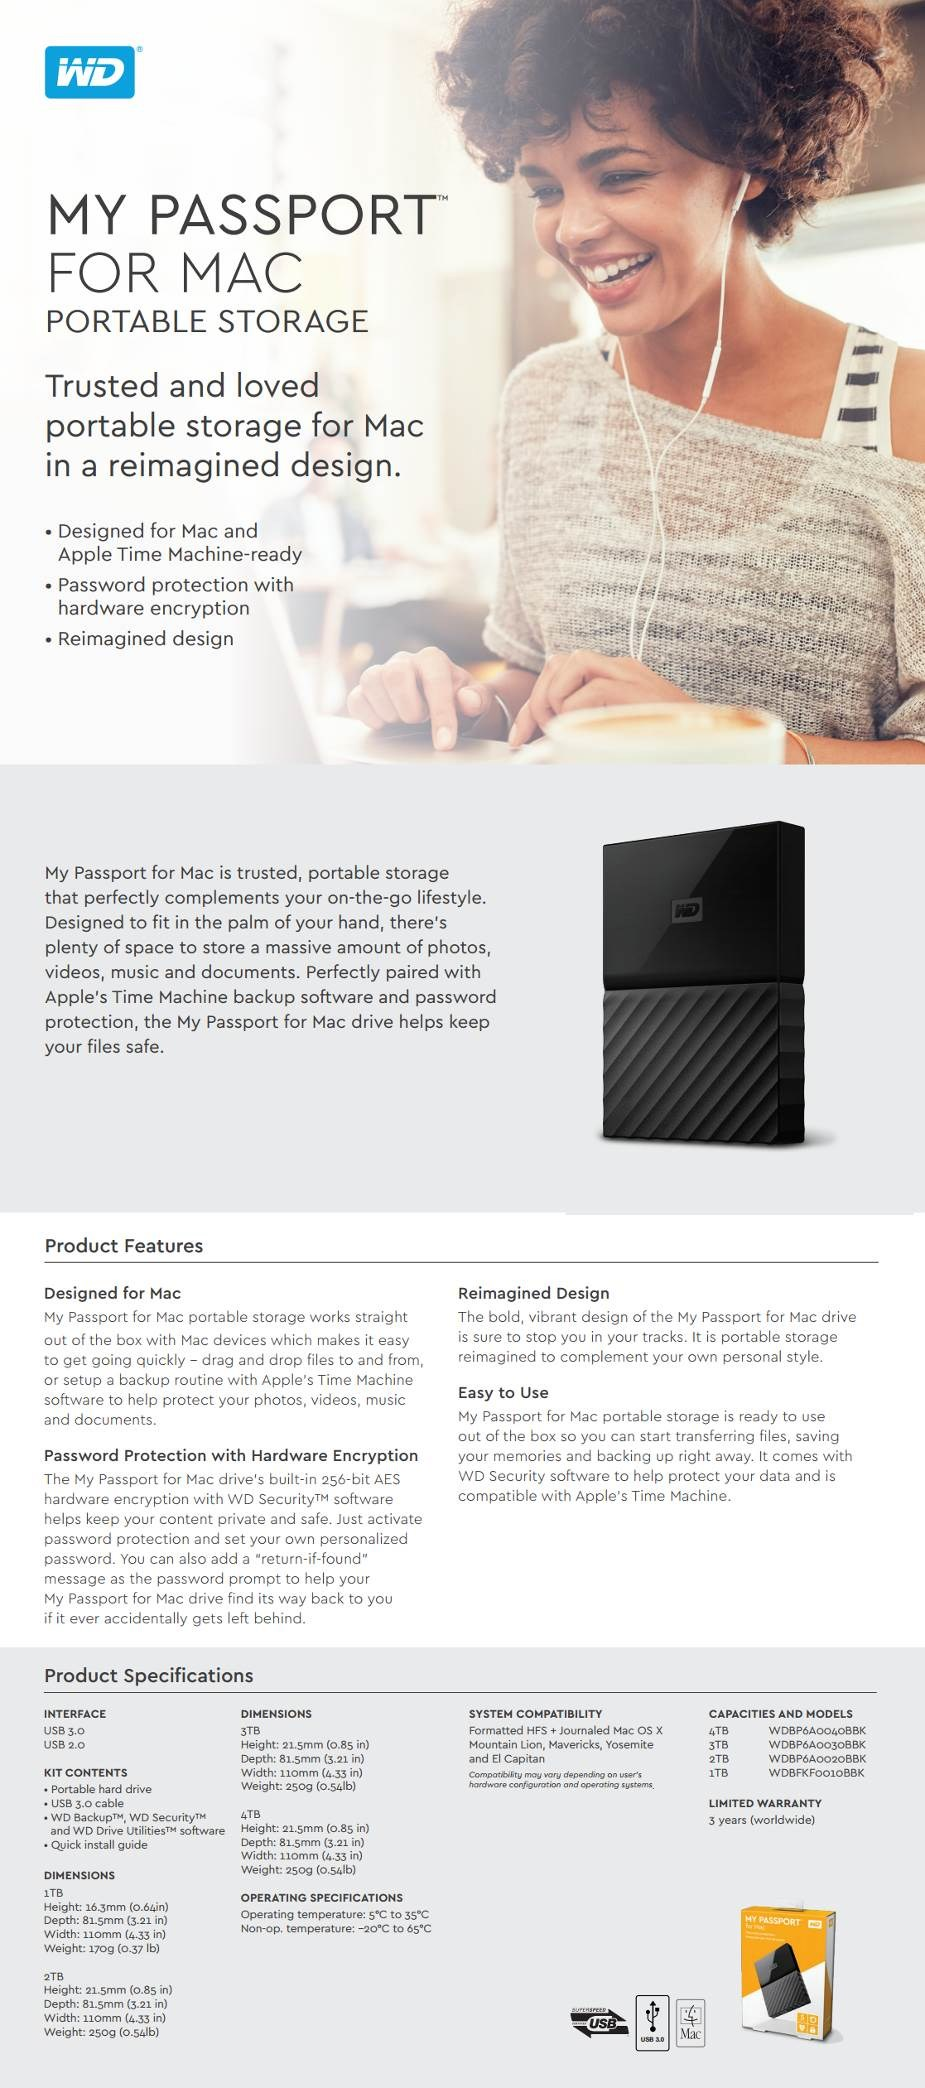 WD My Passport 3TB USB 3.0 Portable Storage for MAC WDBP6A0030BBK - Overview 1